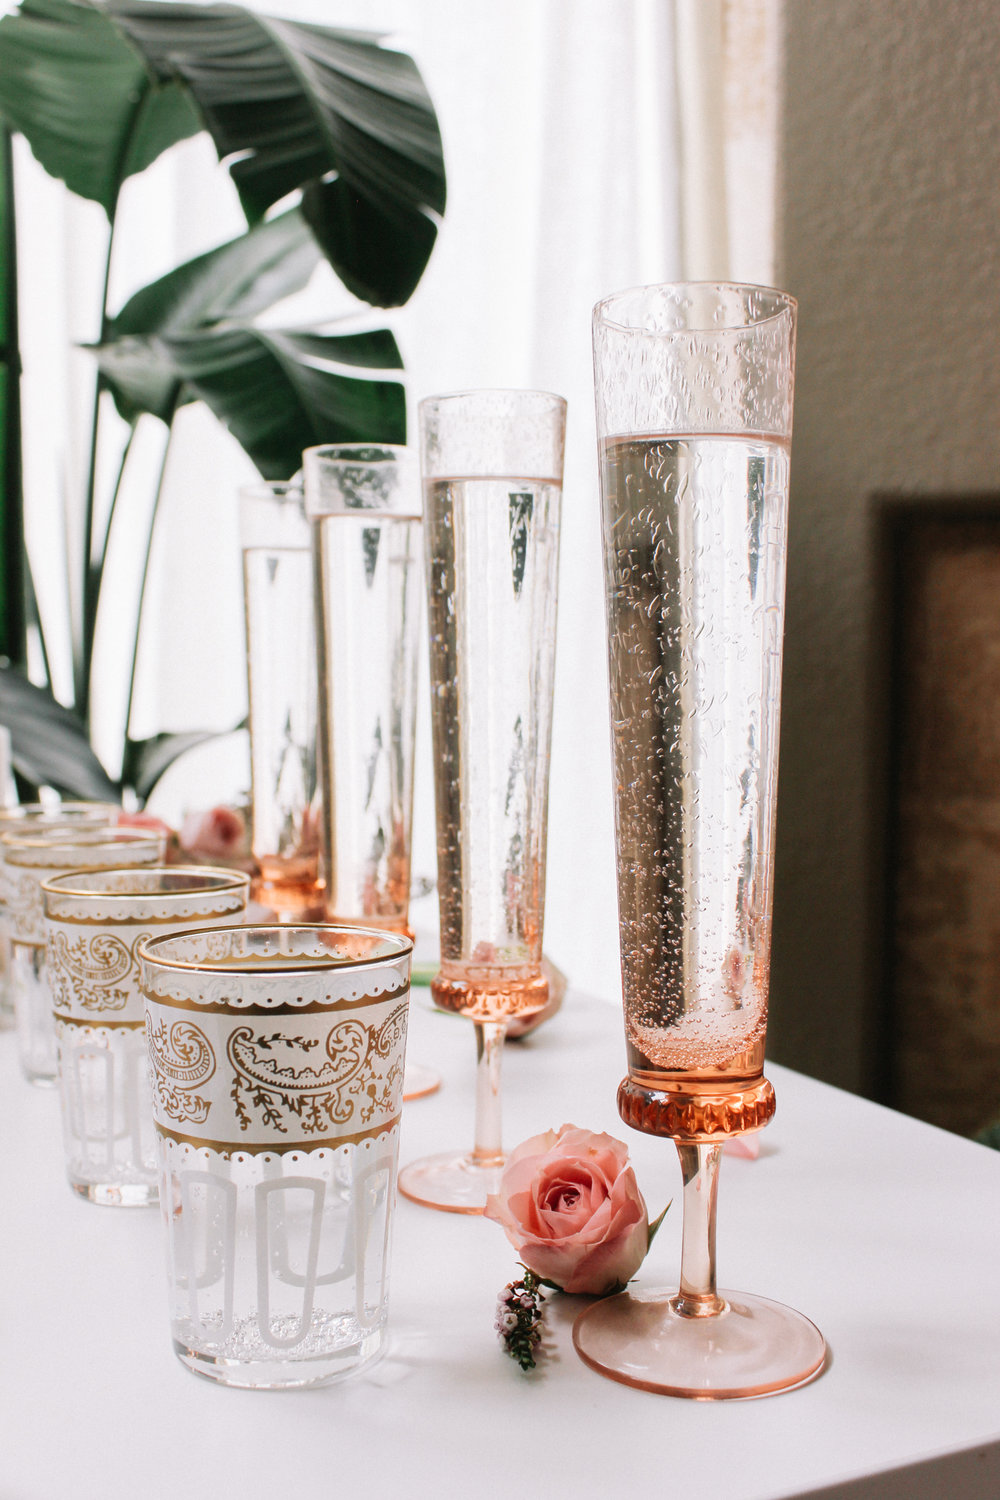 Mix + match glassware for a girls night in | A Fabulous Fete